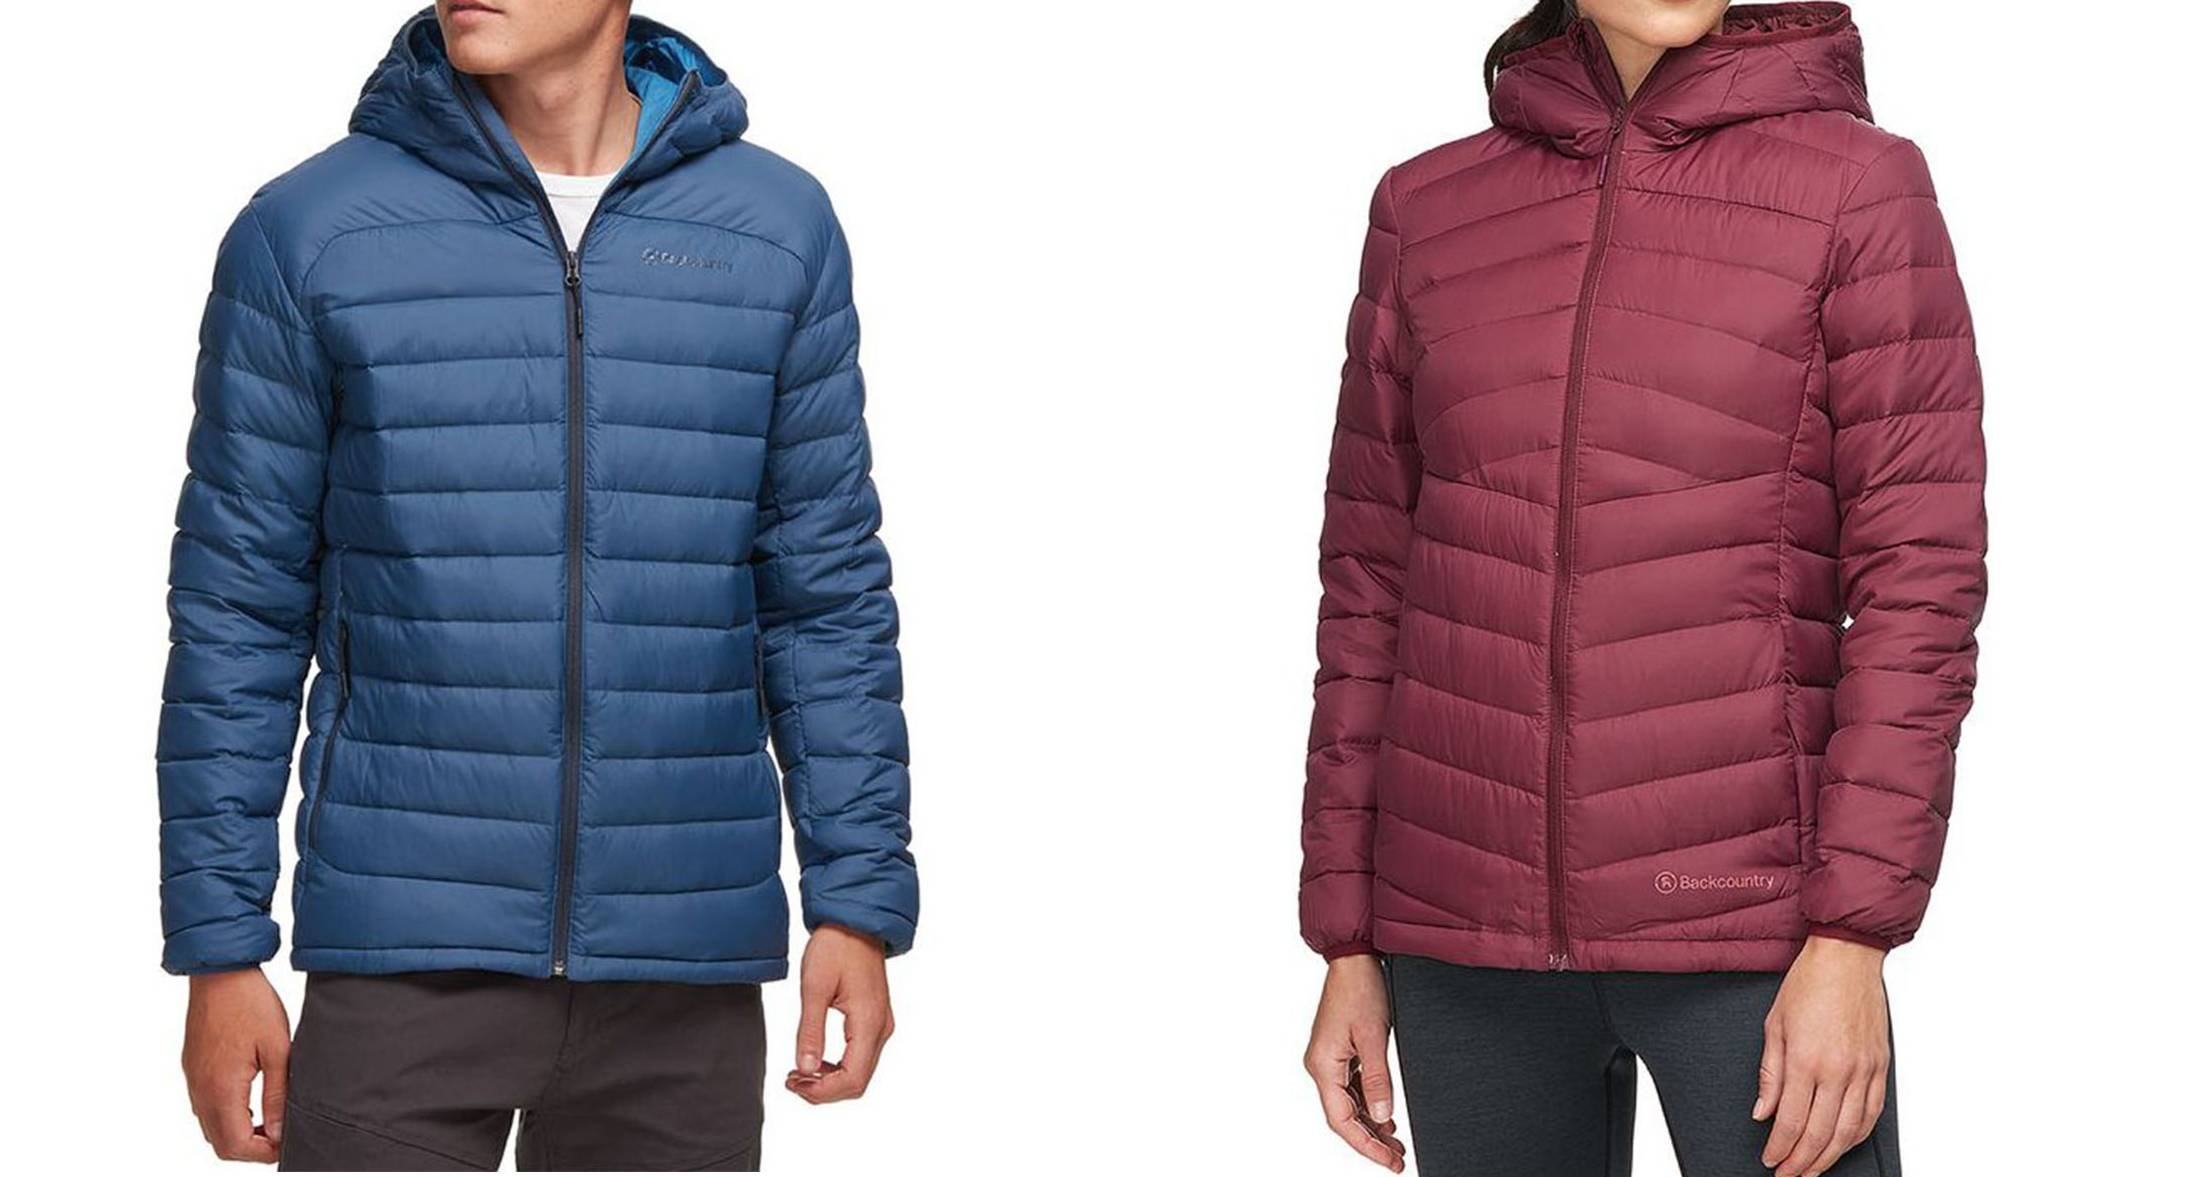 Men and Women's Backcountry Silver Fork 750 Hooded Jackets